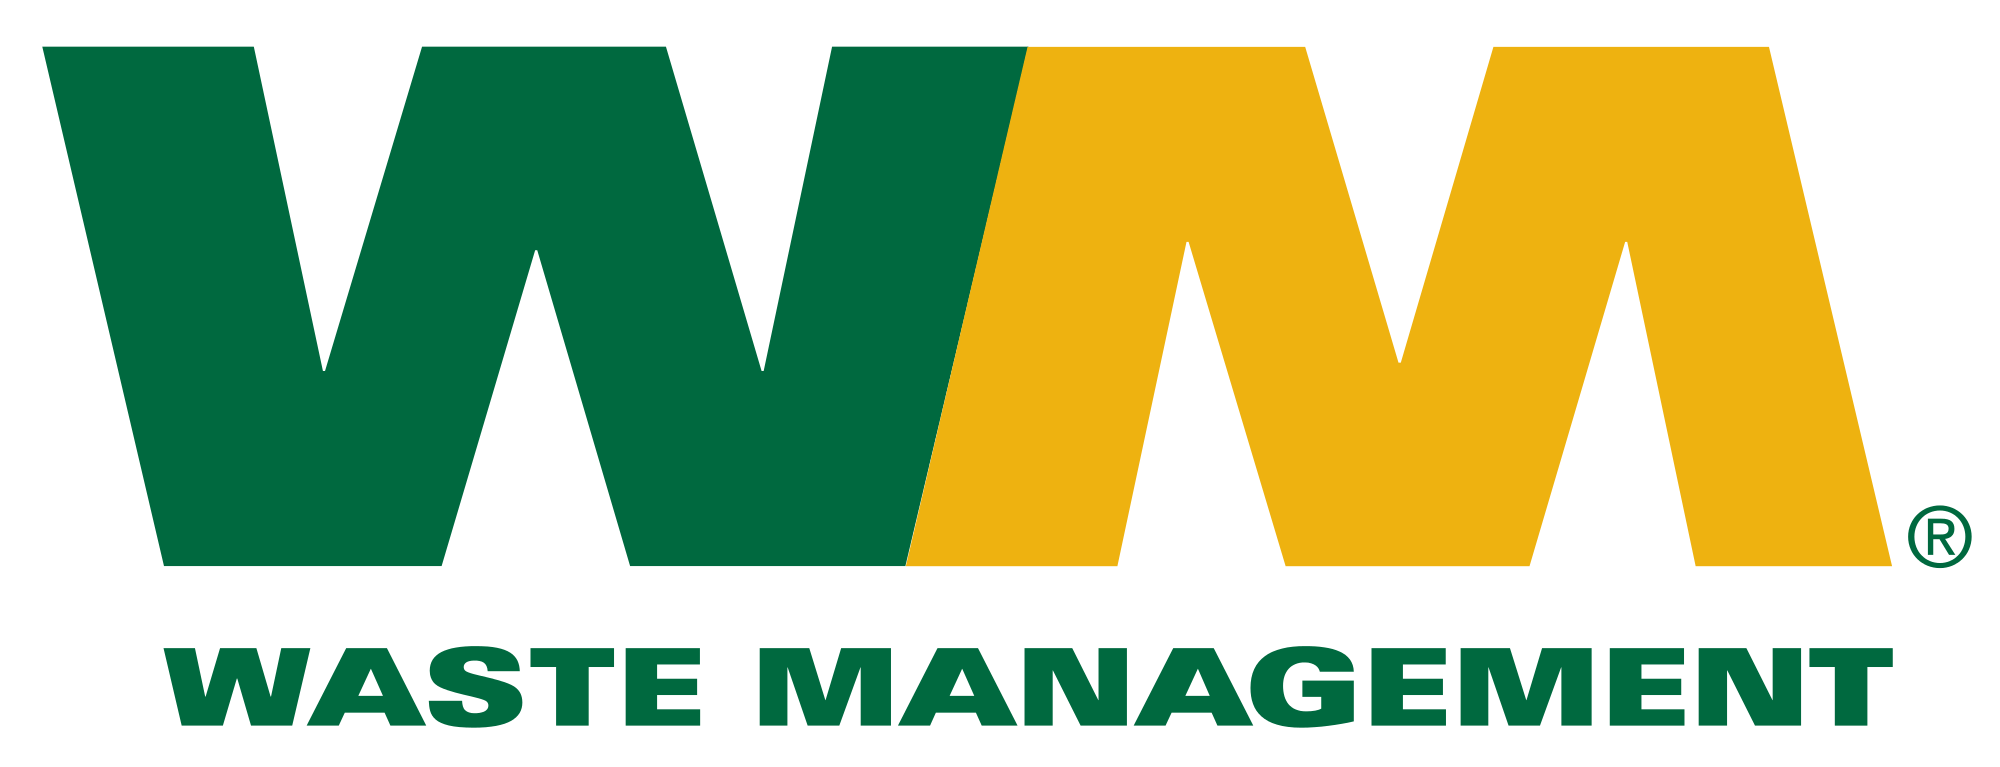 Waste Mgmt logo